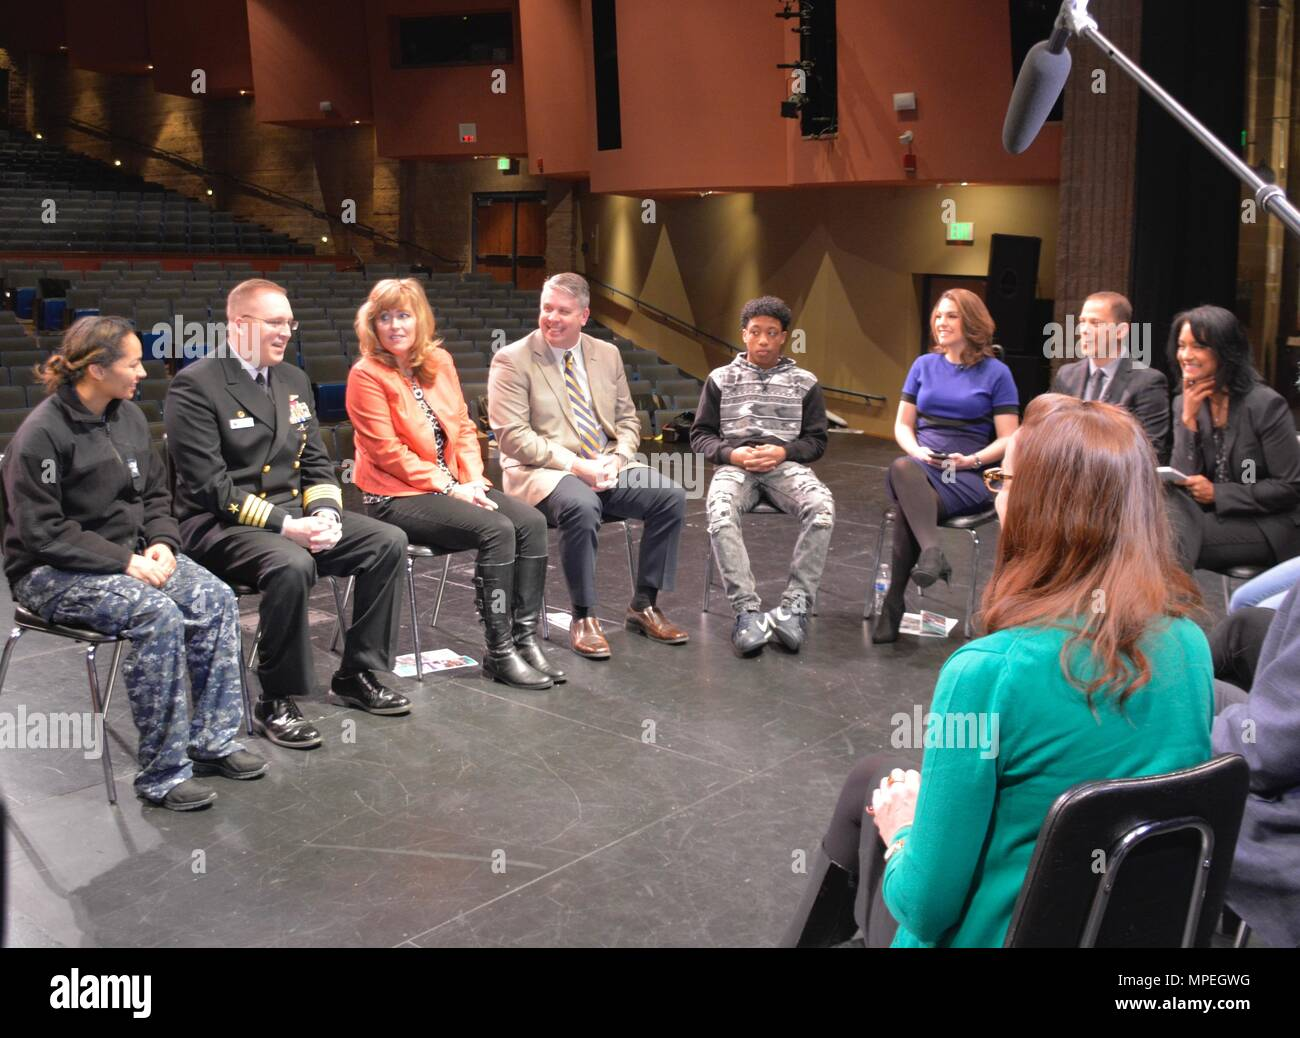 170215-N-KW311-002 BREMERTON, Wash. (Feb. 15, 2017) – Local community members, including Capt. Alan Schrader, Naval Base Kitsap (NBK) commanding officer, school board representatives, high school students, and community leaders, discuss hot topics and share ideas during a roundtable organized by KING-TV Seattle at the Bremerton High School Performing Arts Center. The dialogue was arranged to address the community's health and economic growth. (U.S. Navy photo by Aviation Ordnanceman Airman Ayana Happel/Released) - Stock Image